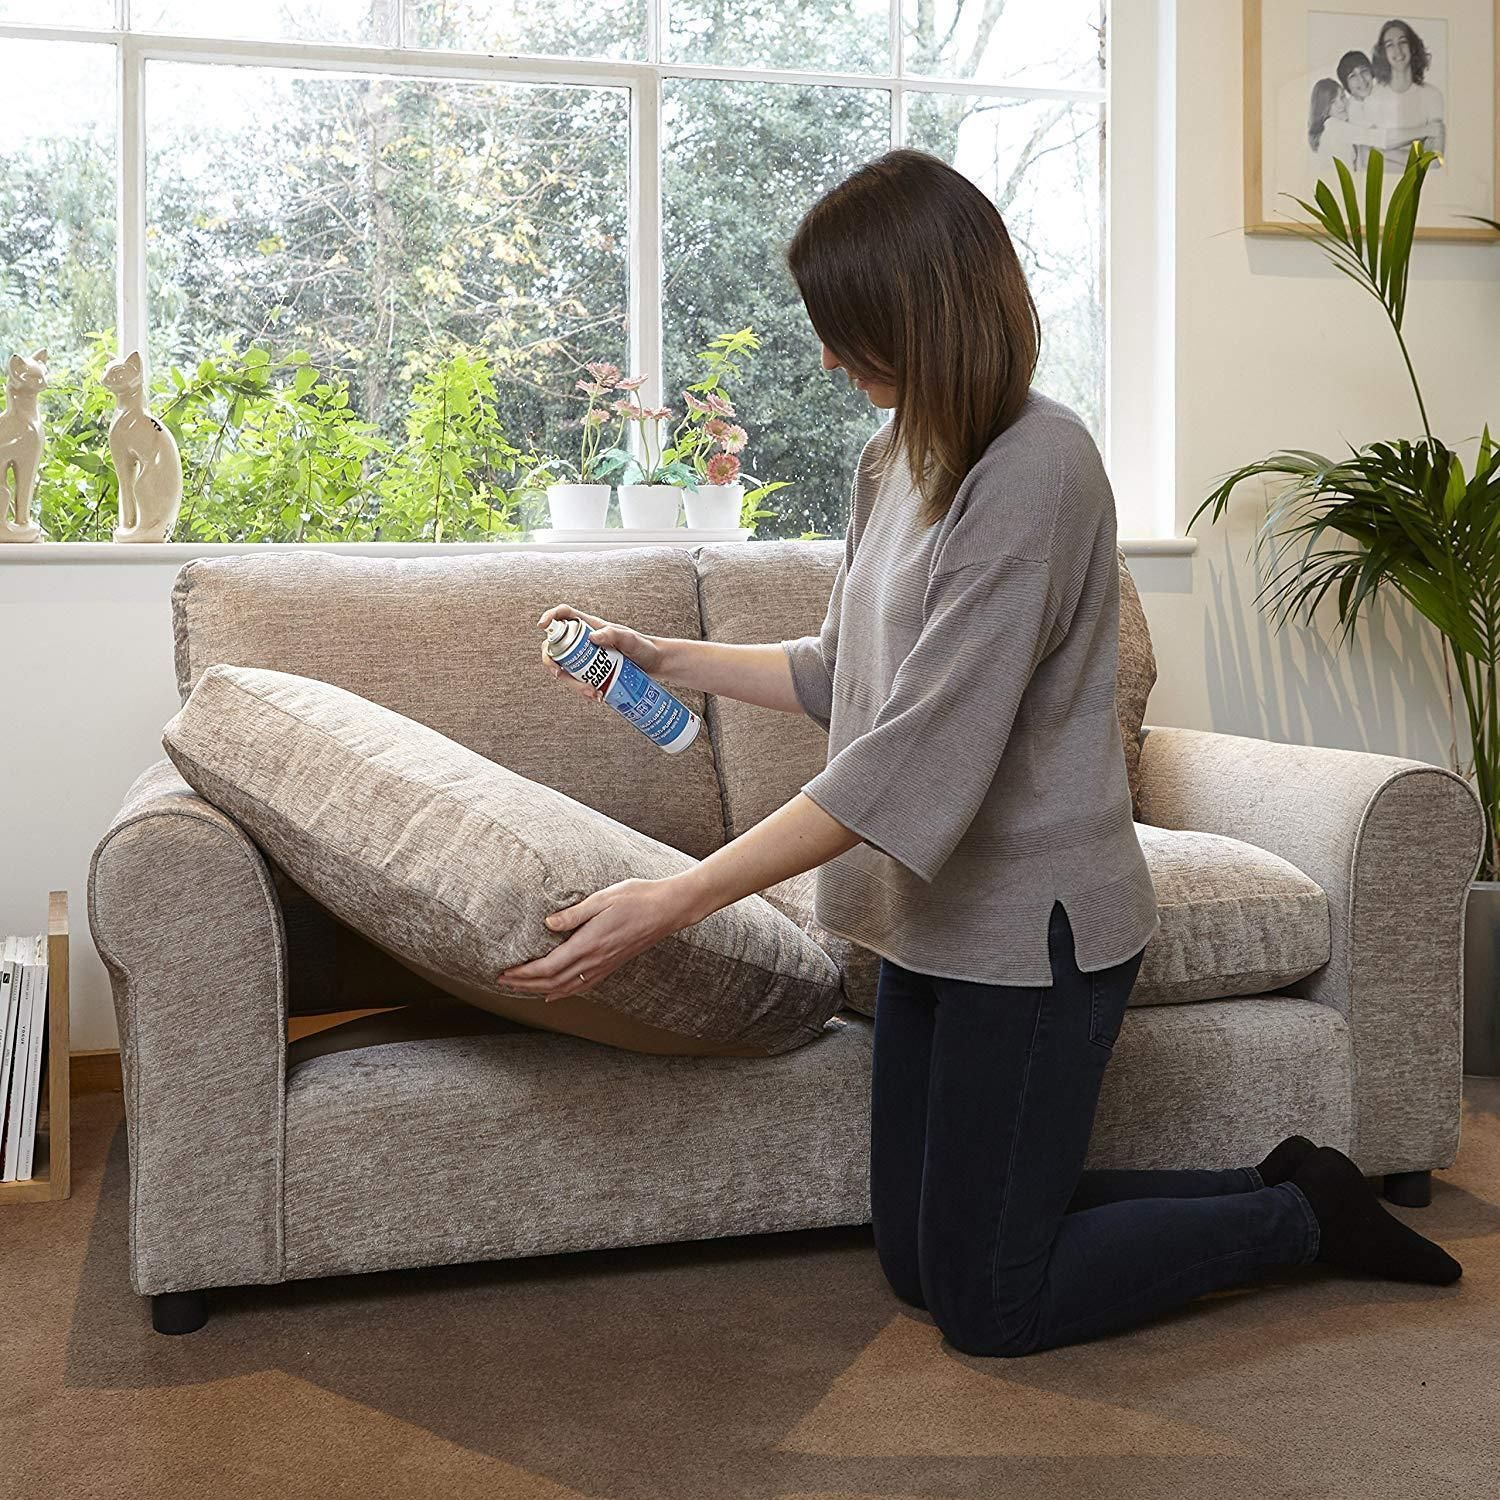 Upholstery Cleaning Services in Hughes